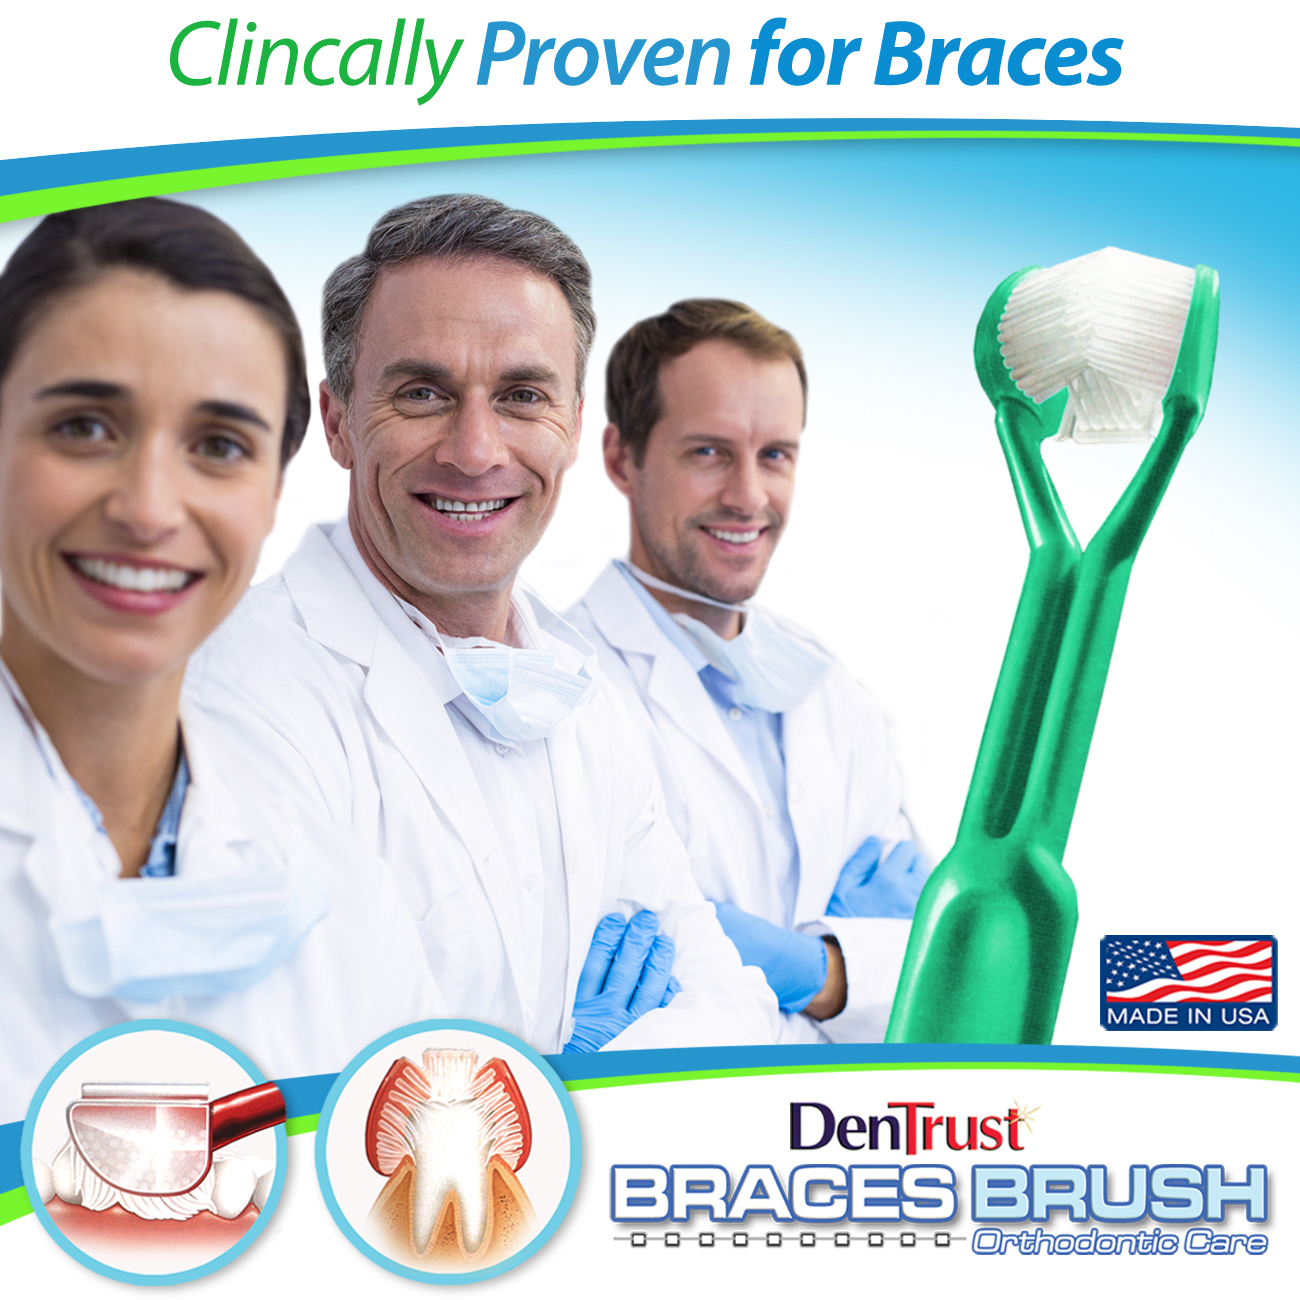 DenTrust BRACES BRUSH :: 3-Sided Toothbrush :: Clinically Proven to Remove More Plaque Around Dental Brackets Design :: Fast, Easy & More Complete Dental Care